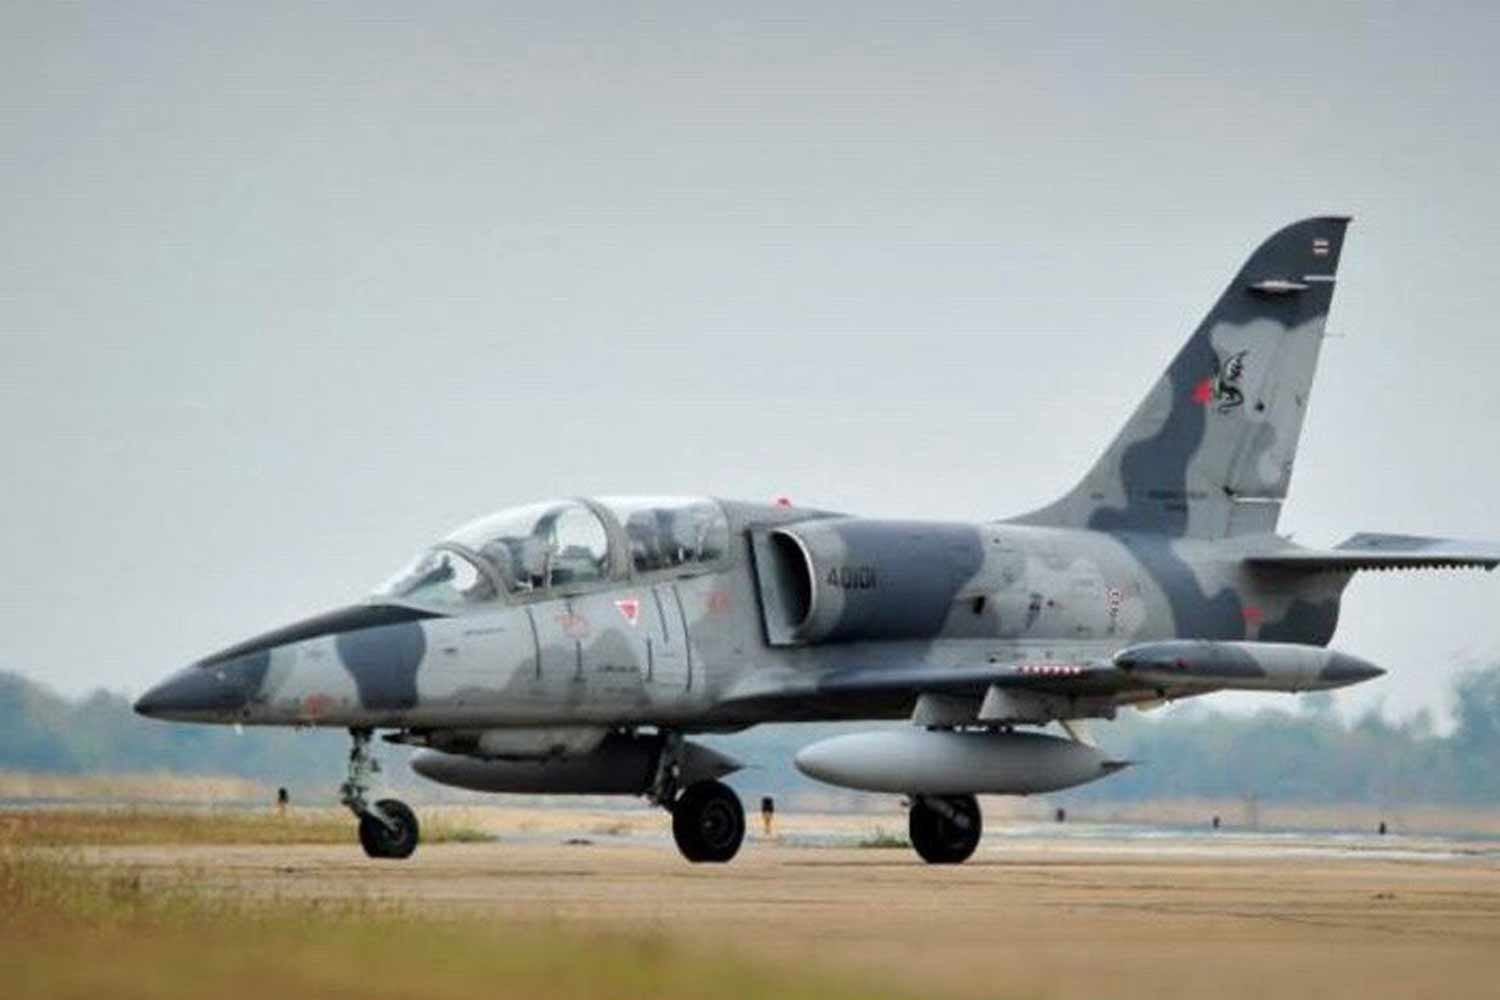 An L-39 jet trainer of the same make as the one that crashed in Chiang Mai on Thursday. (Photos supplied)